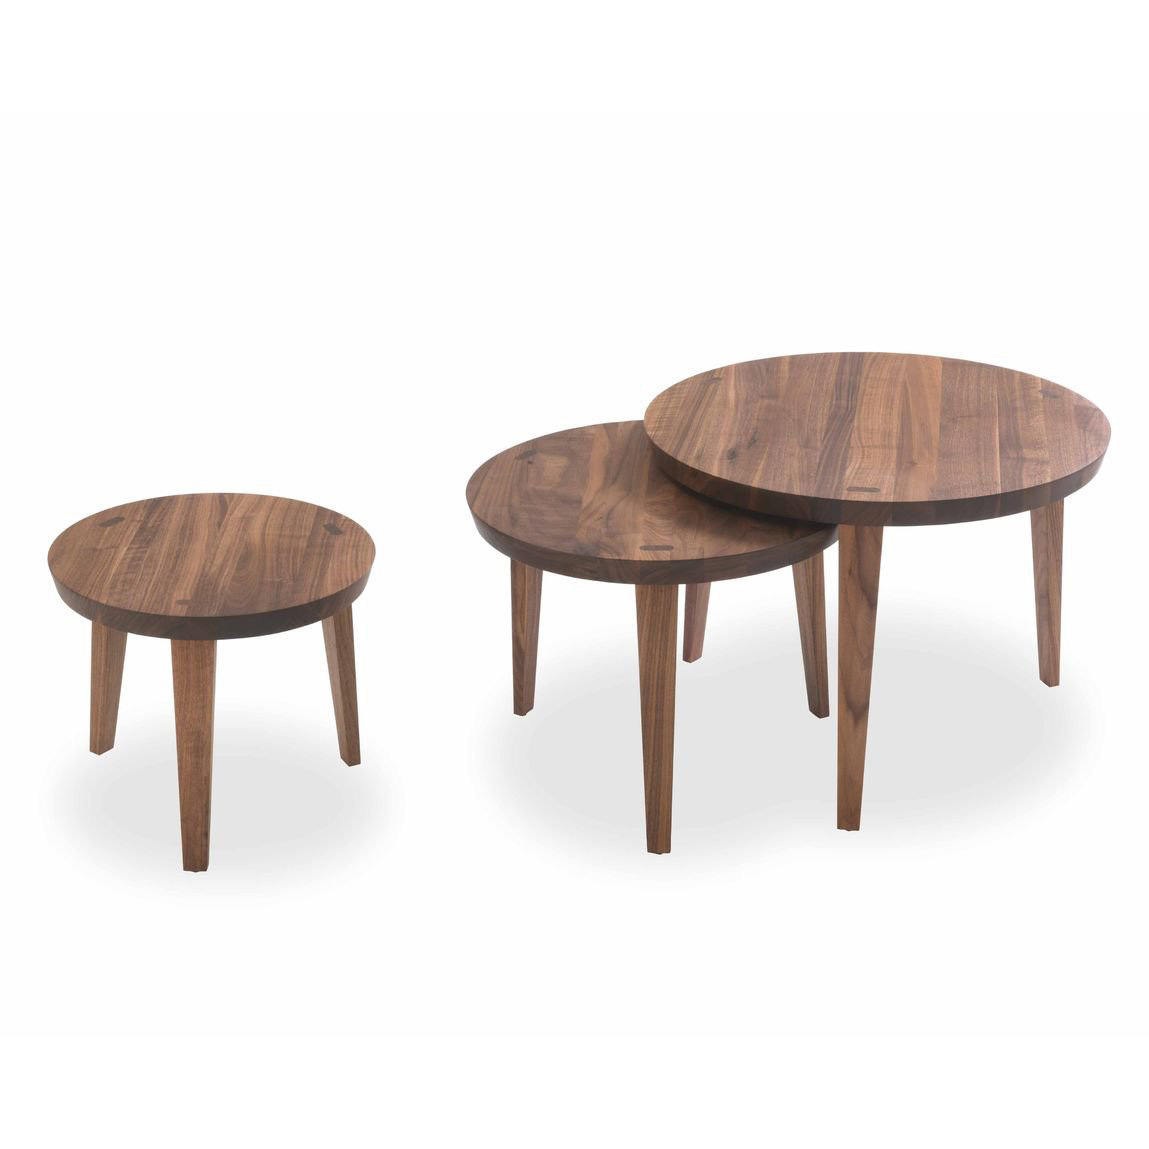 Tao Coffee Table from Riva 1920, designed by C.R. & S. Riva 1920